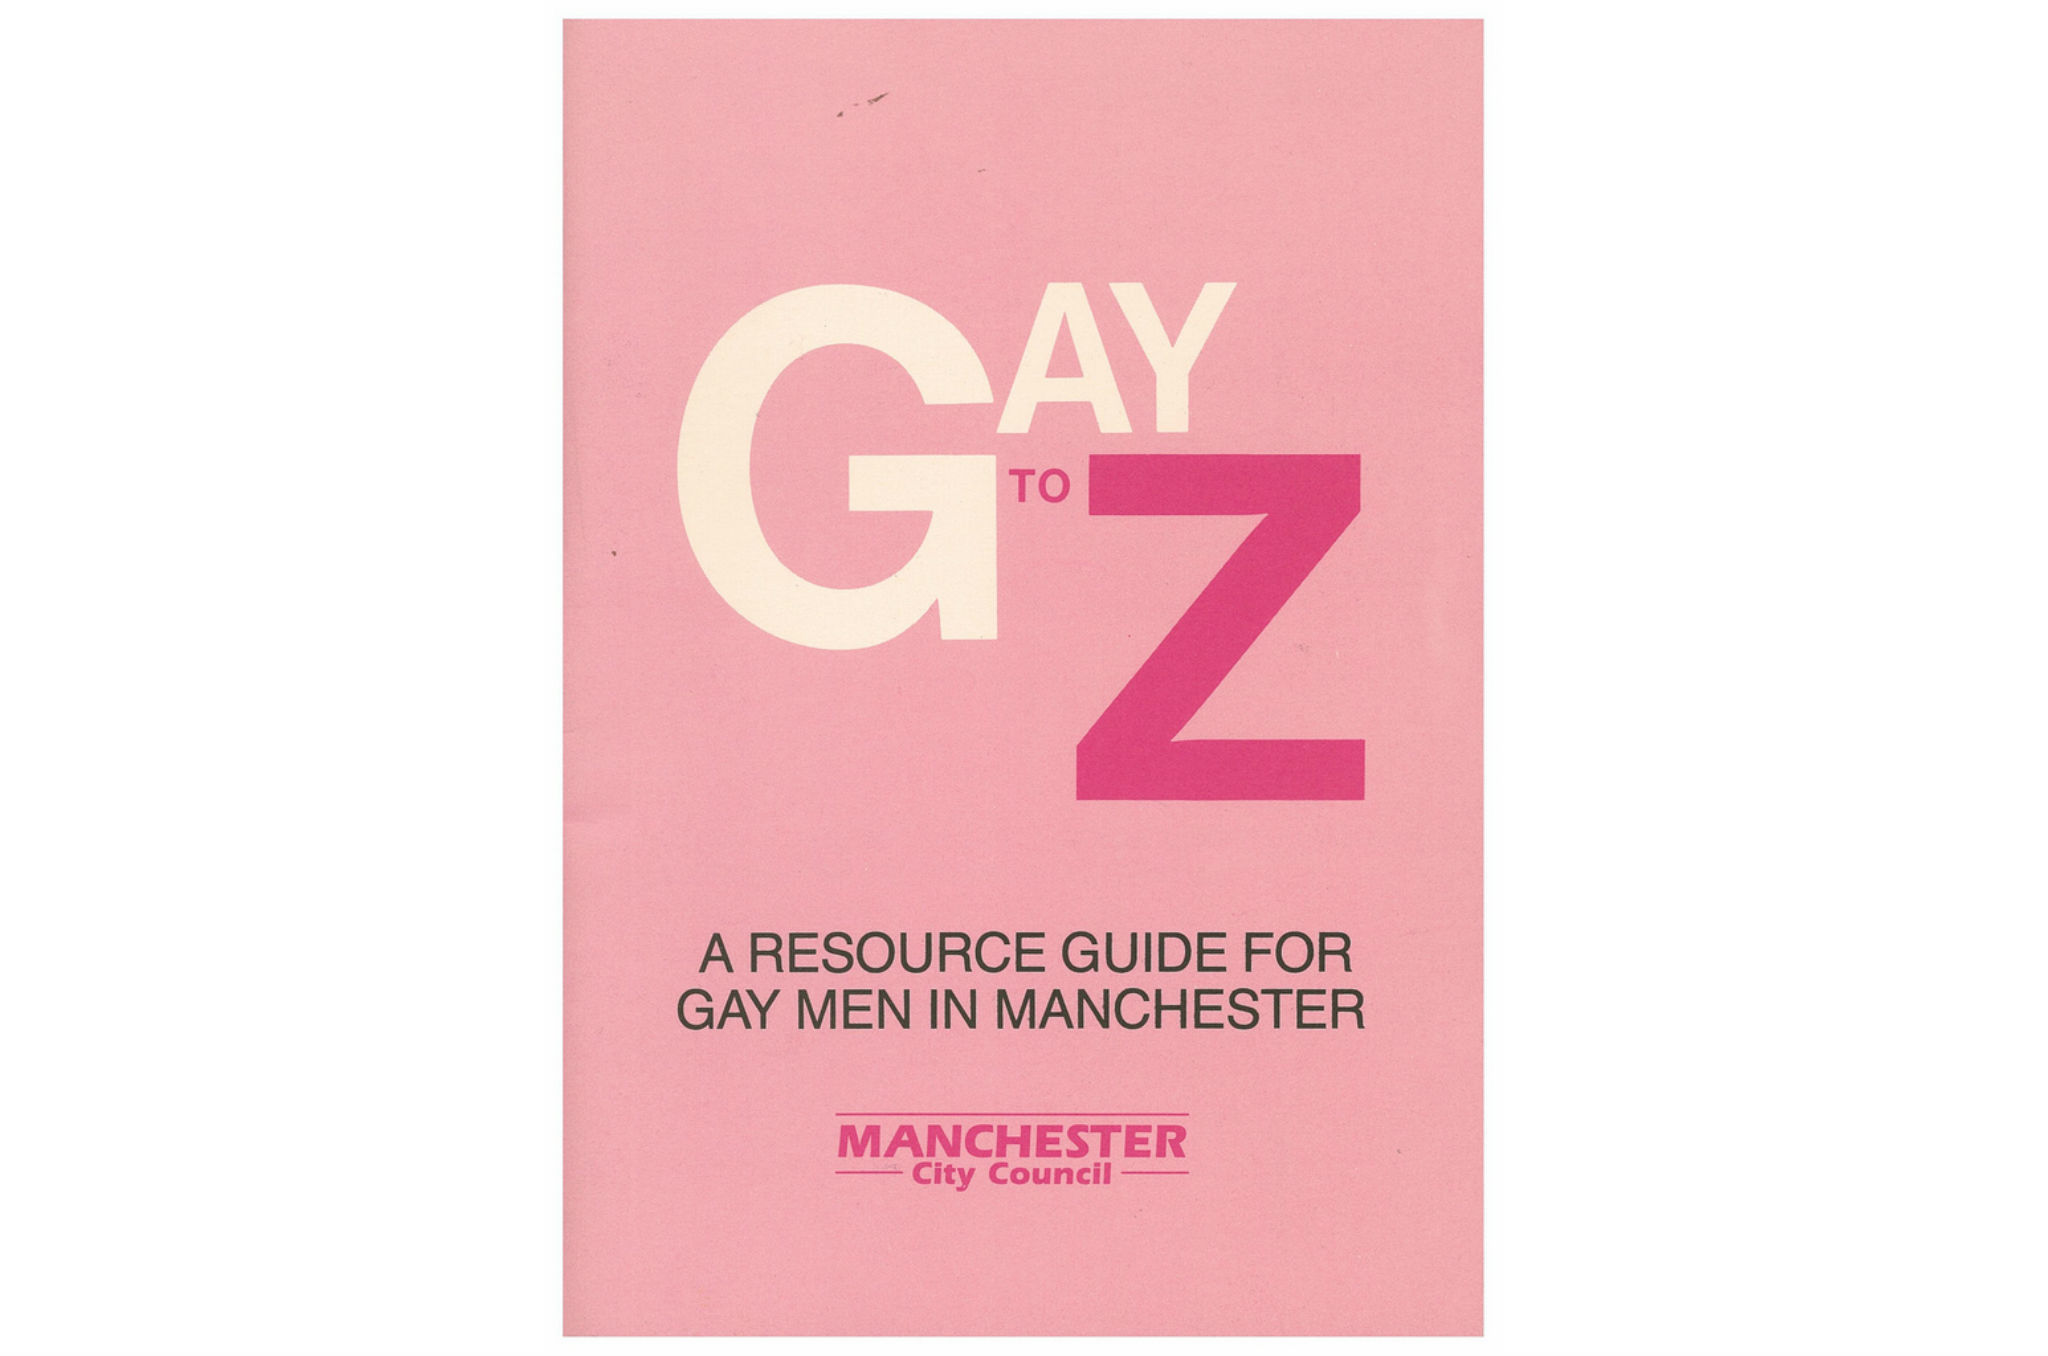 Manchester Council's Gay to Z